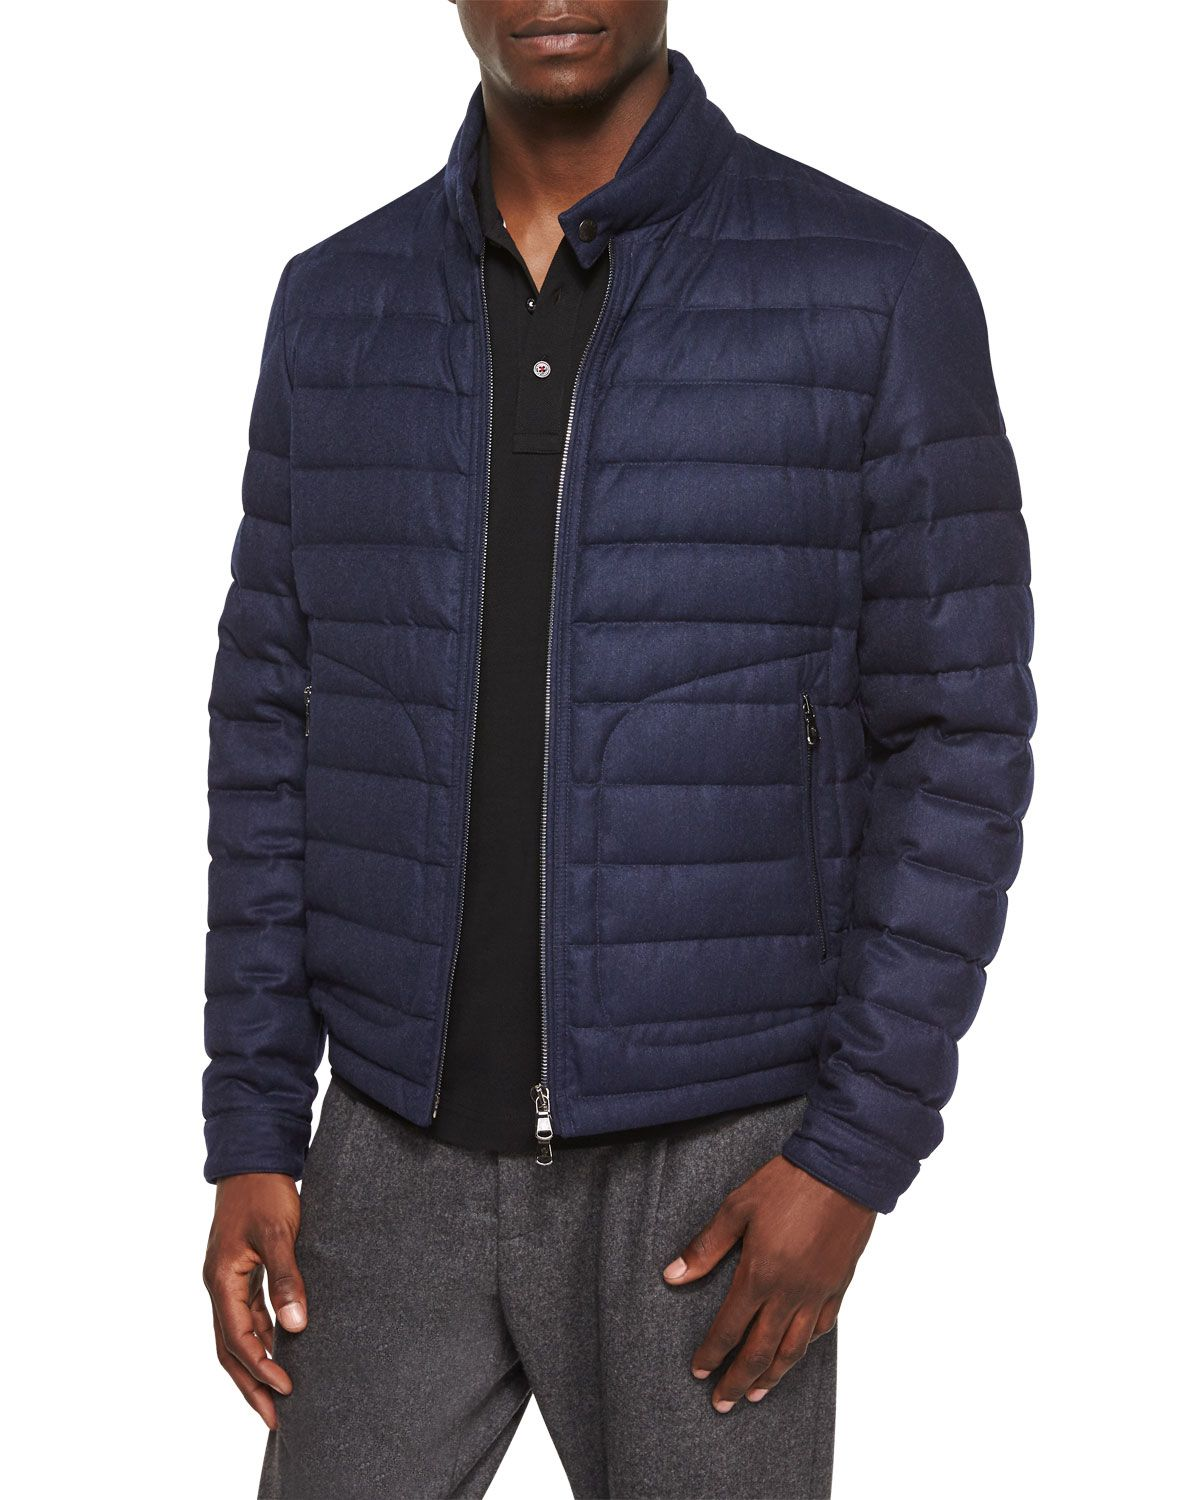 6b9e82948 Delabost Quilted Bomber Jacket